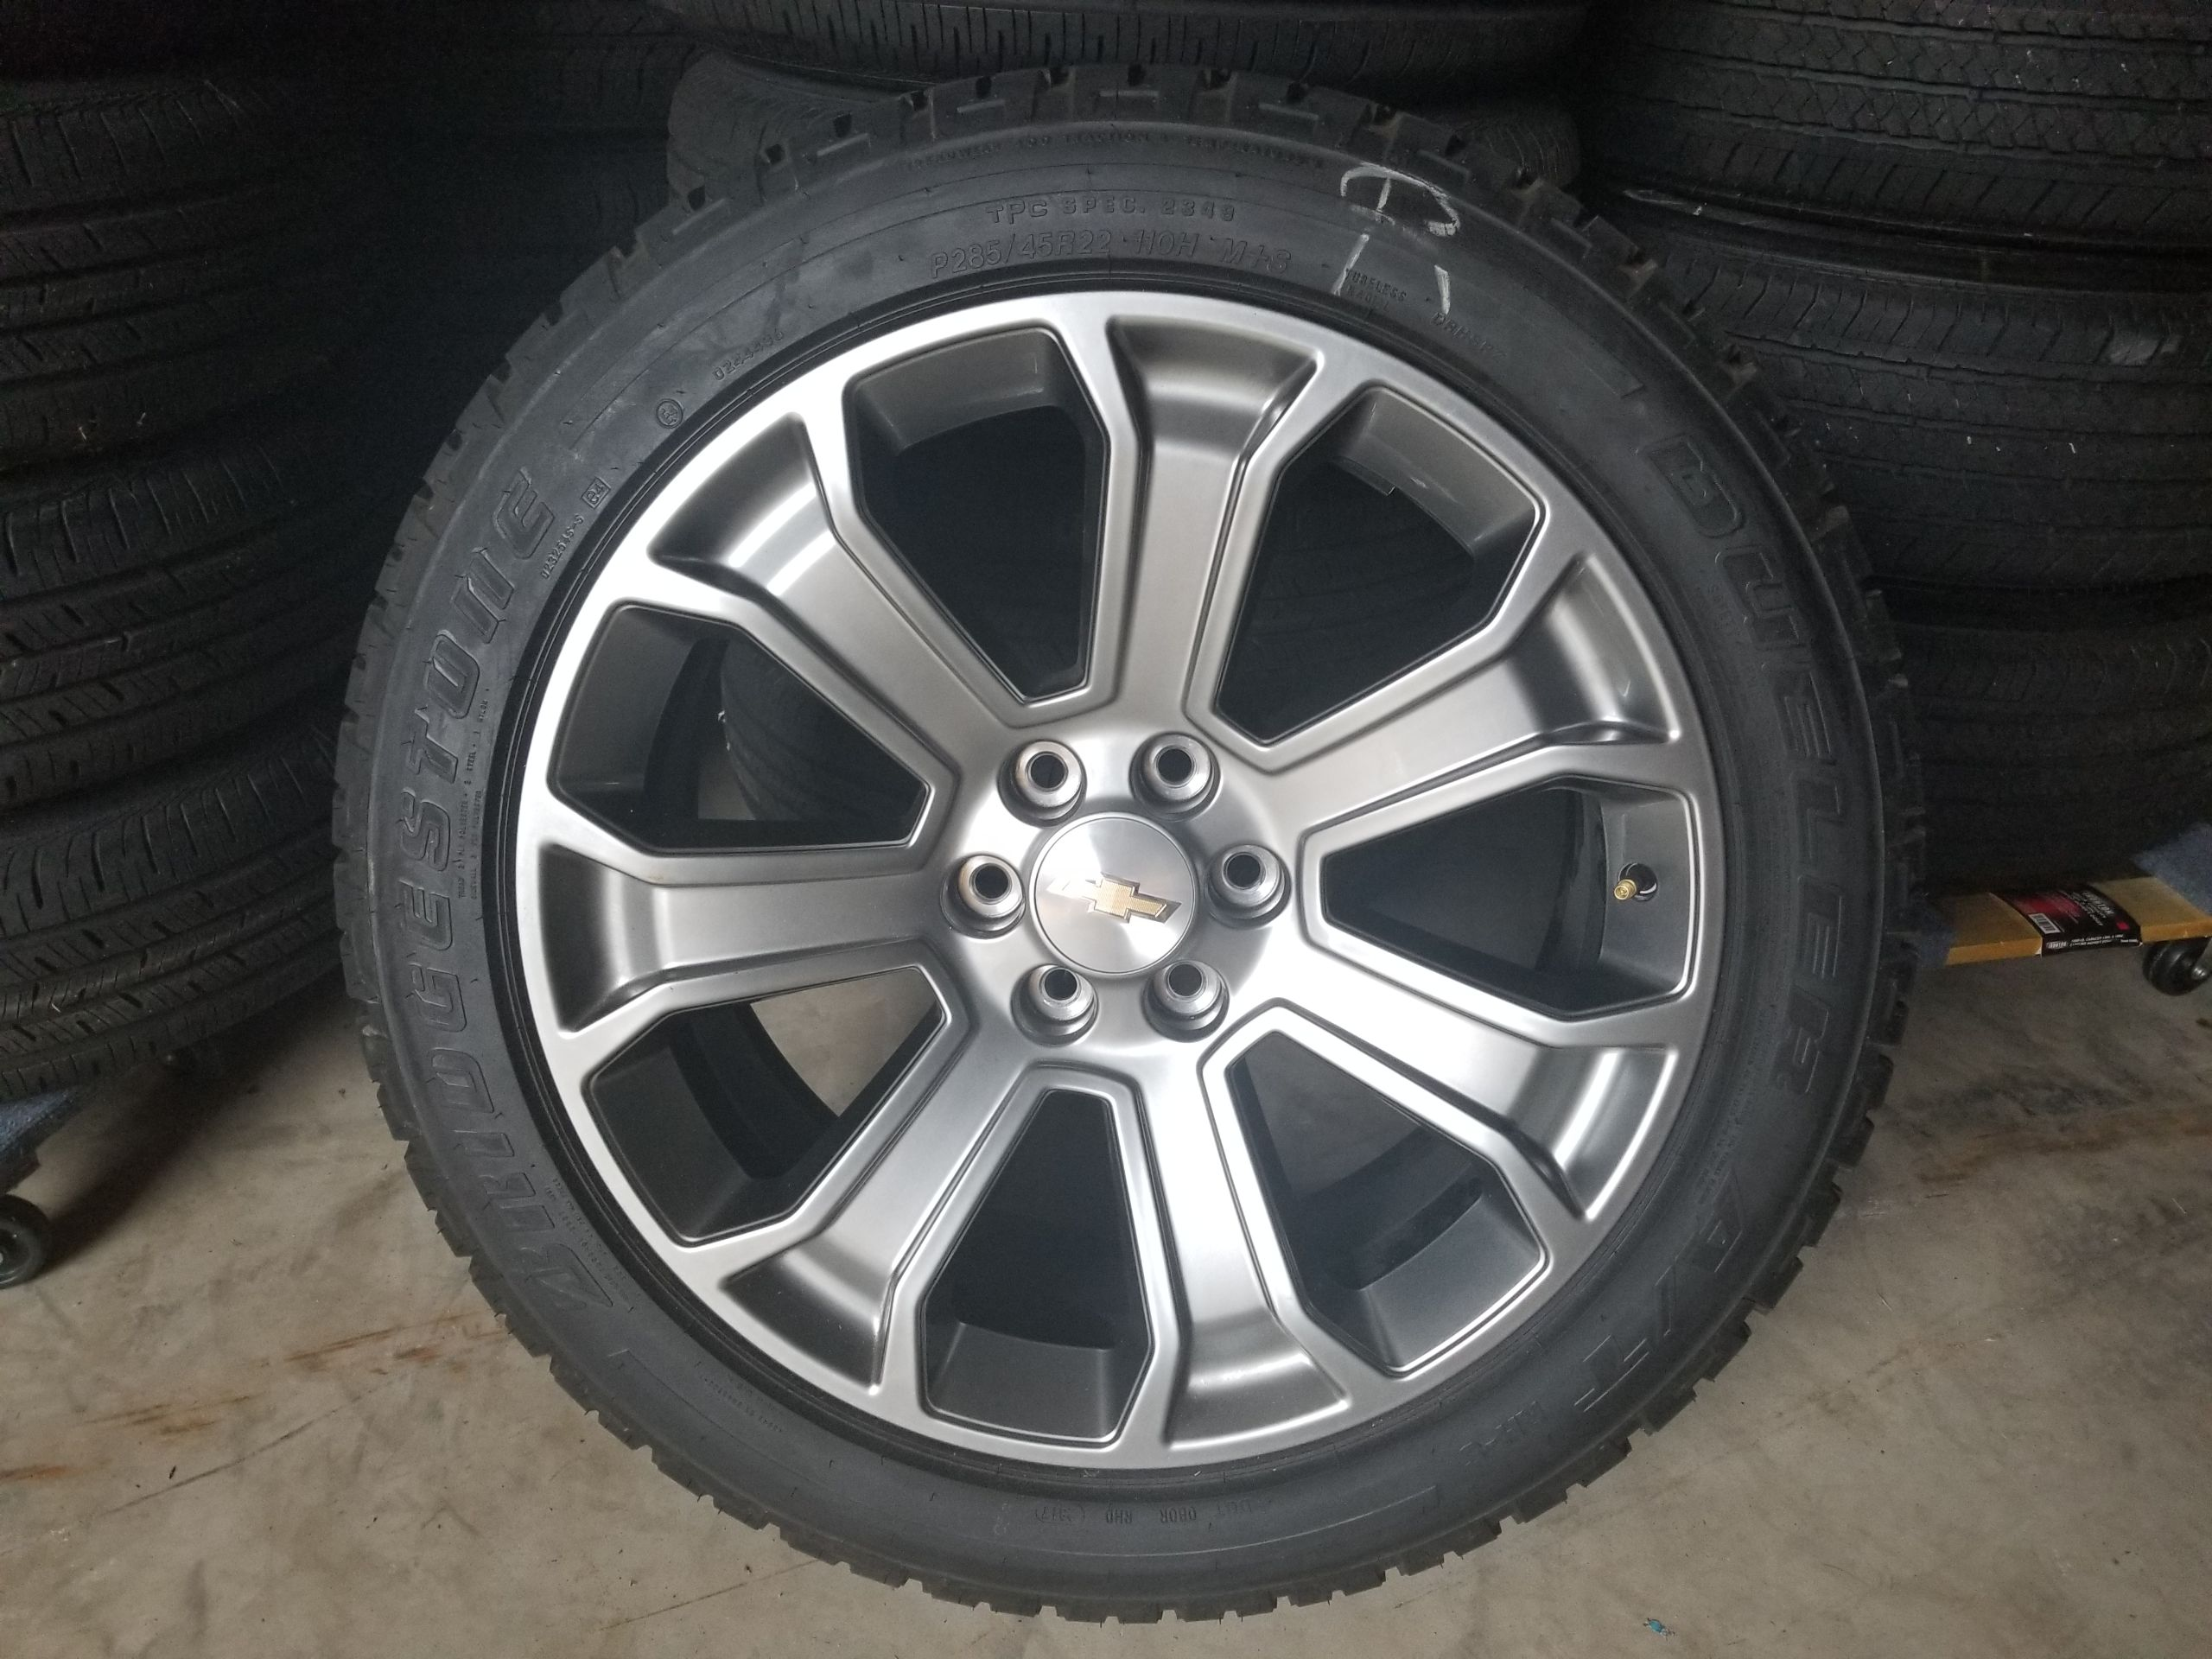 Chevy 22 factory oem wheels